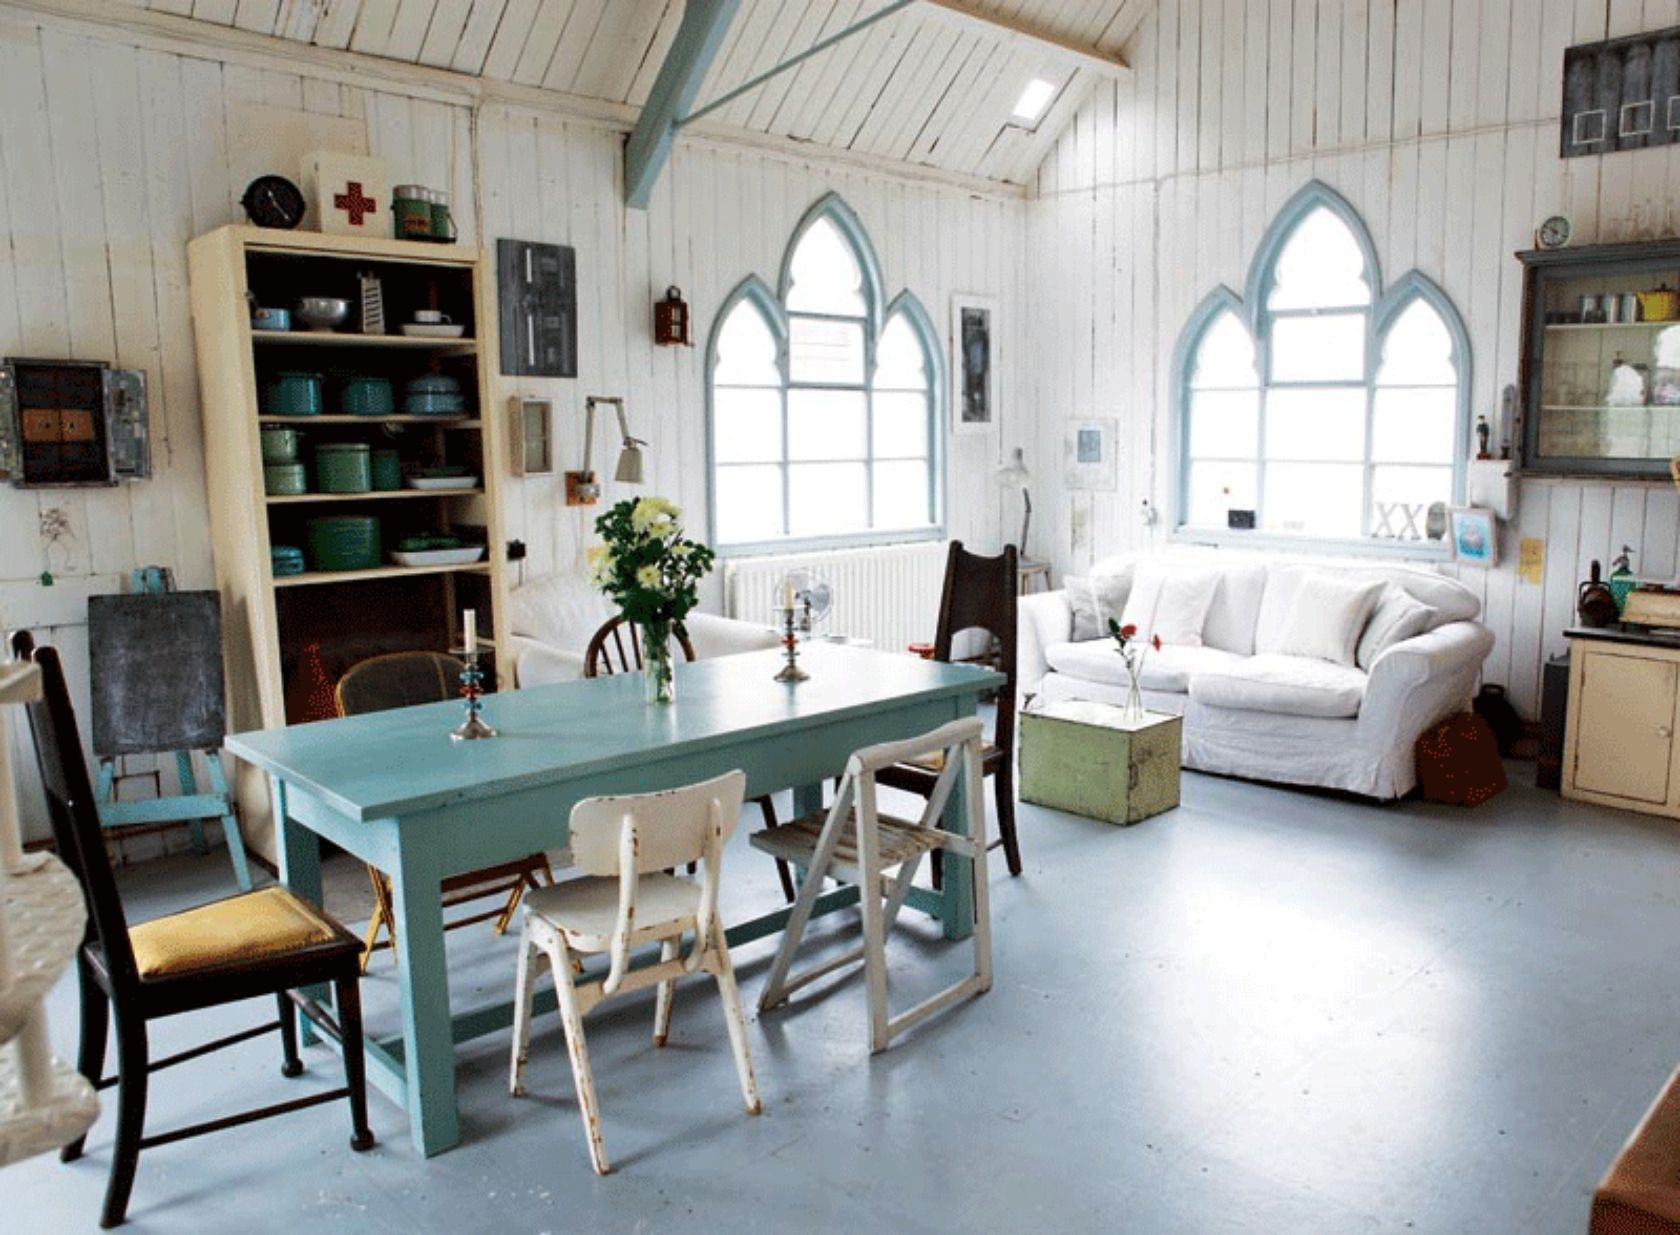 A converted Chapel in Faversham, England.